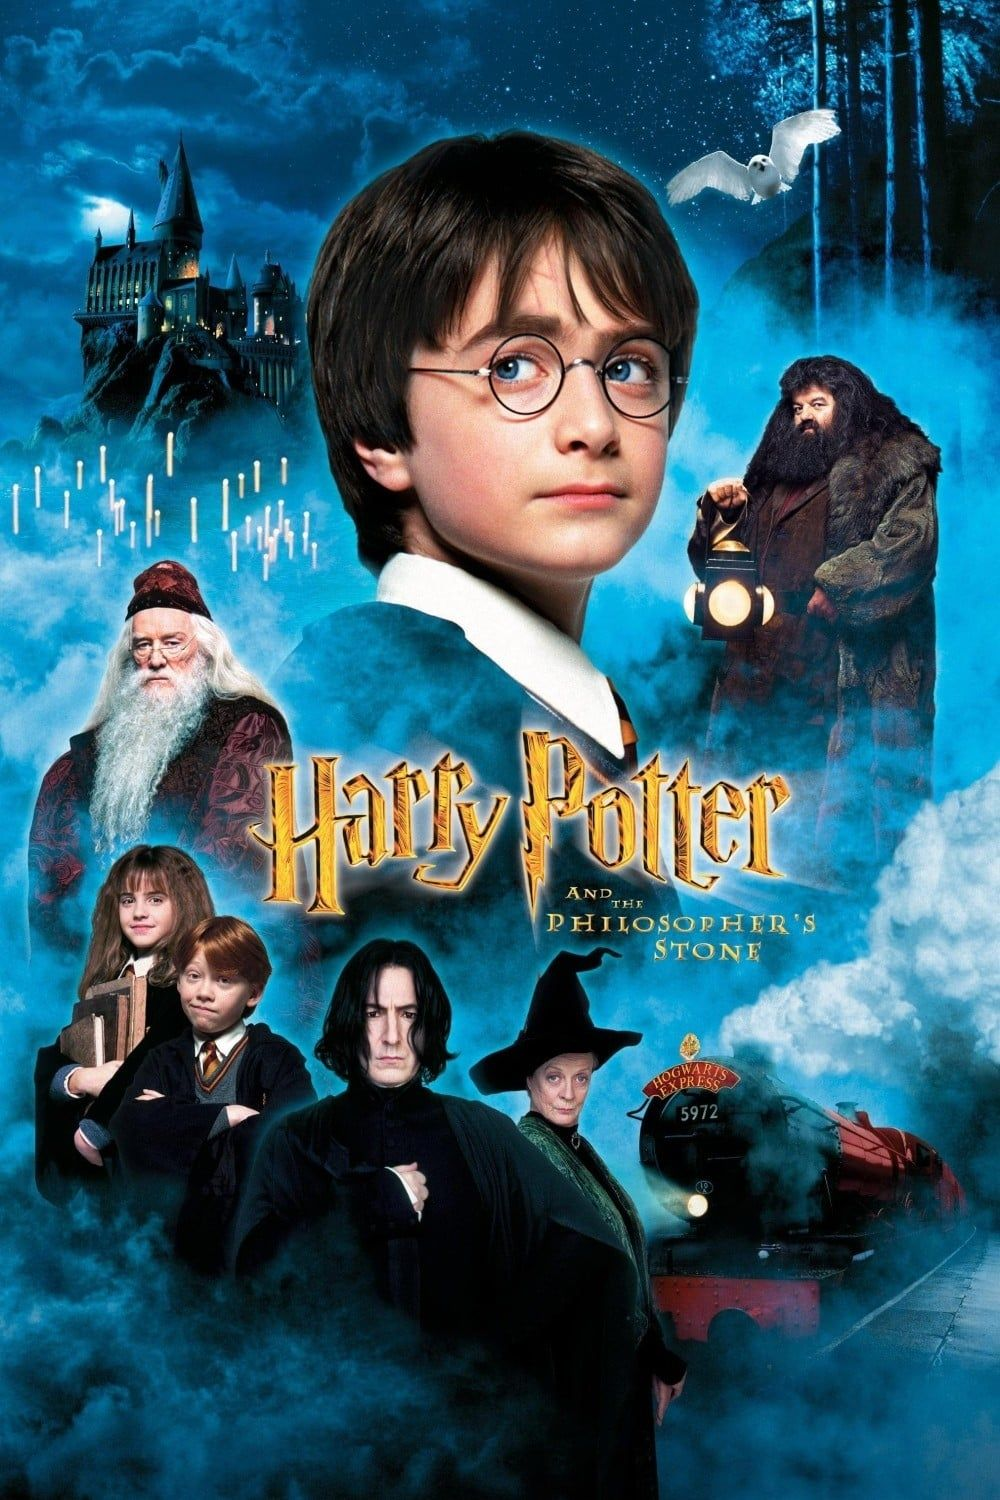 Harry Potter Has Lived Under The Stairs At His Aunt And Uncle S House His Whole Harry Potter Movie Posters Harry Potter Movies Philosopher S Stone Harry Potter